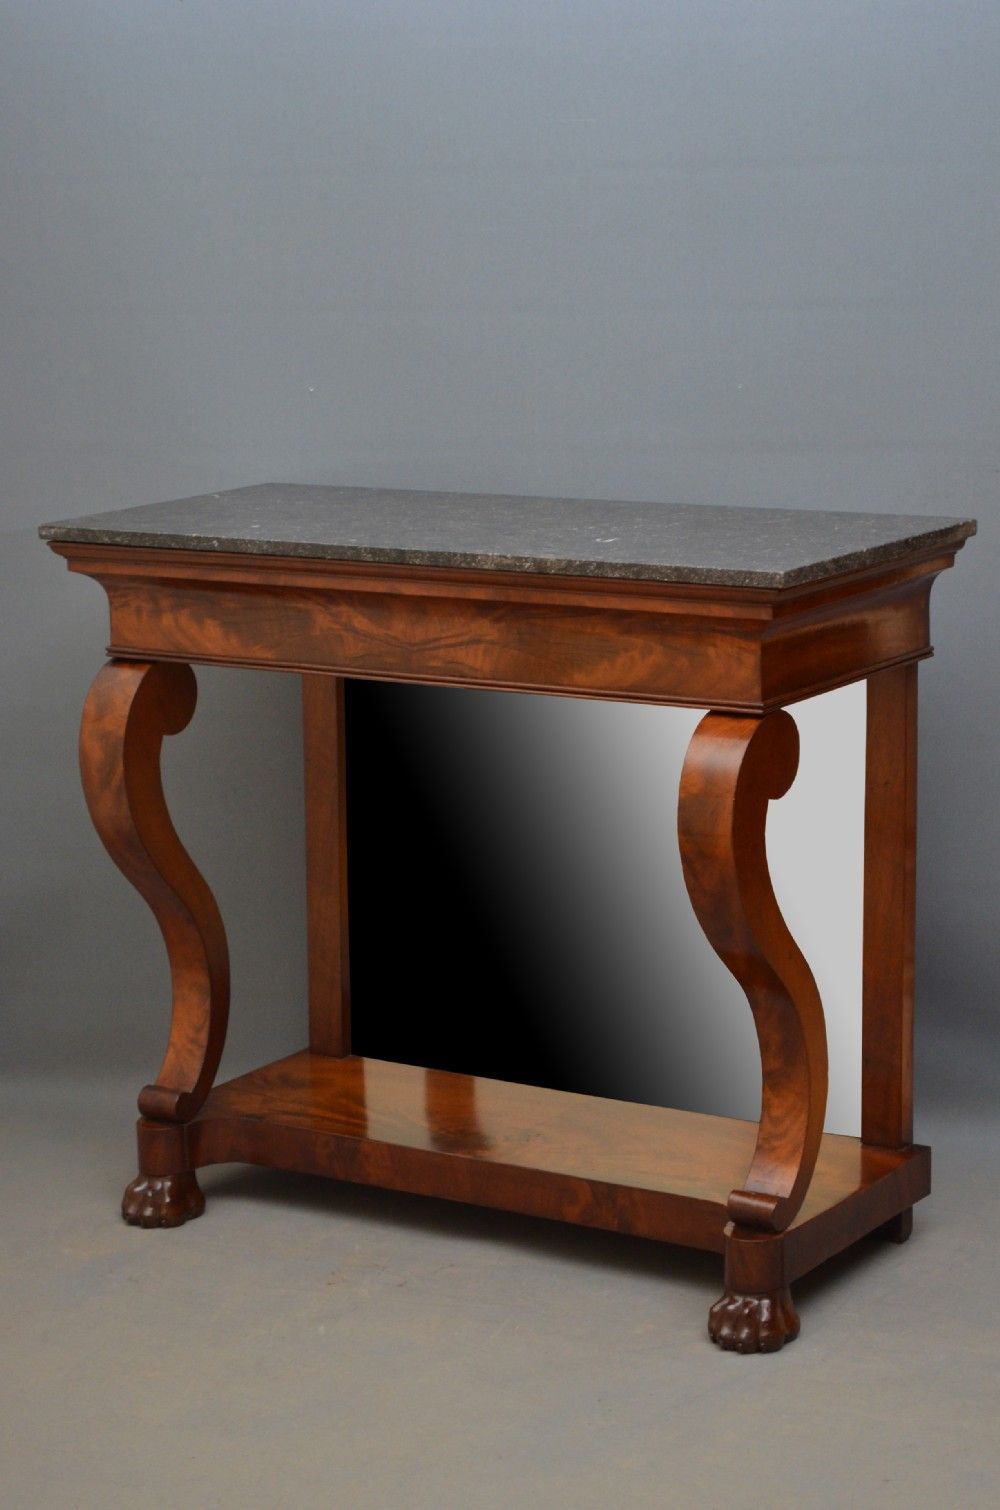 Elegant Regency Mahogany Console Table   Hall Table. C1820